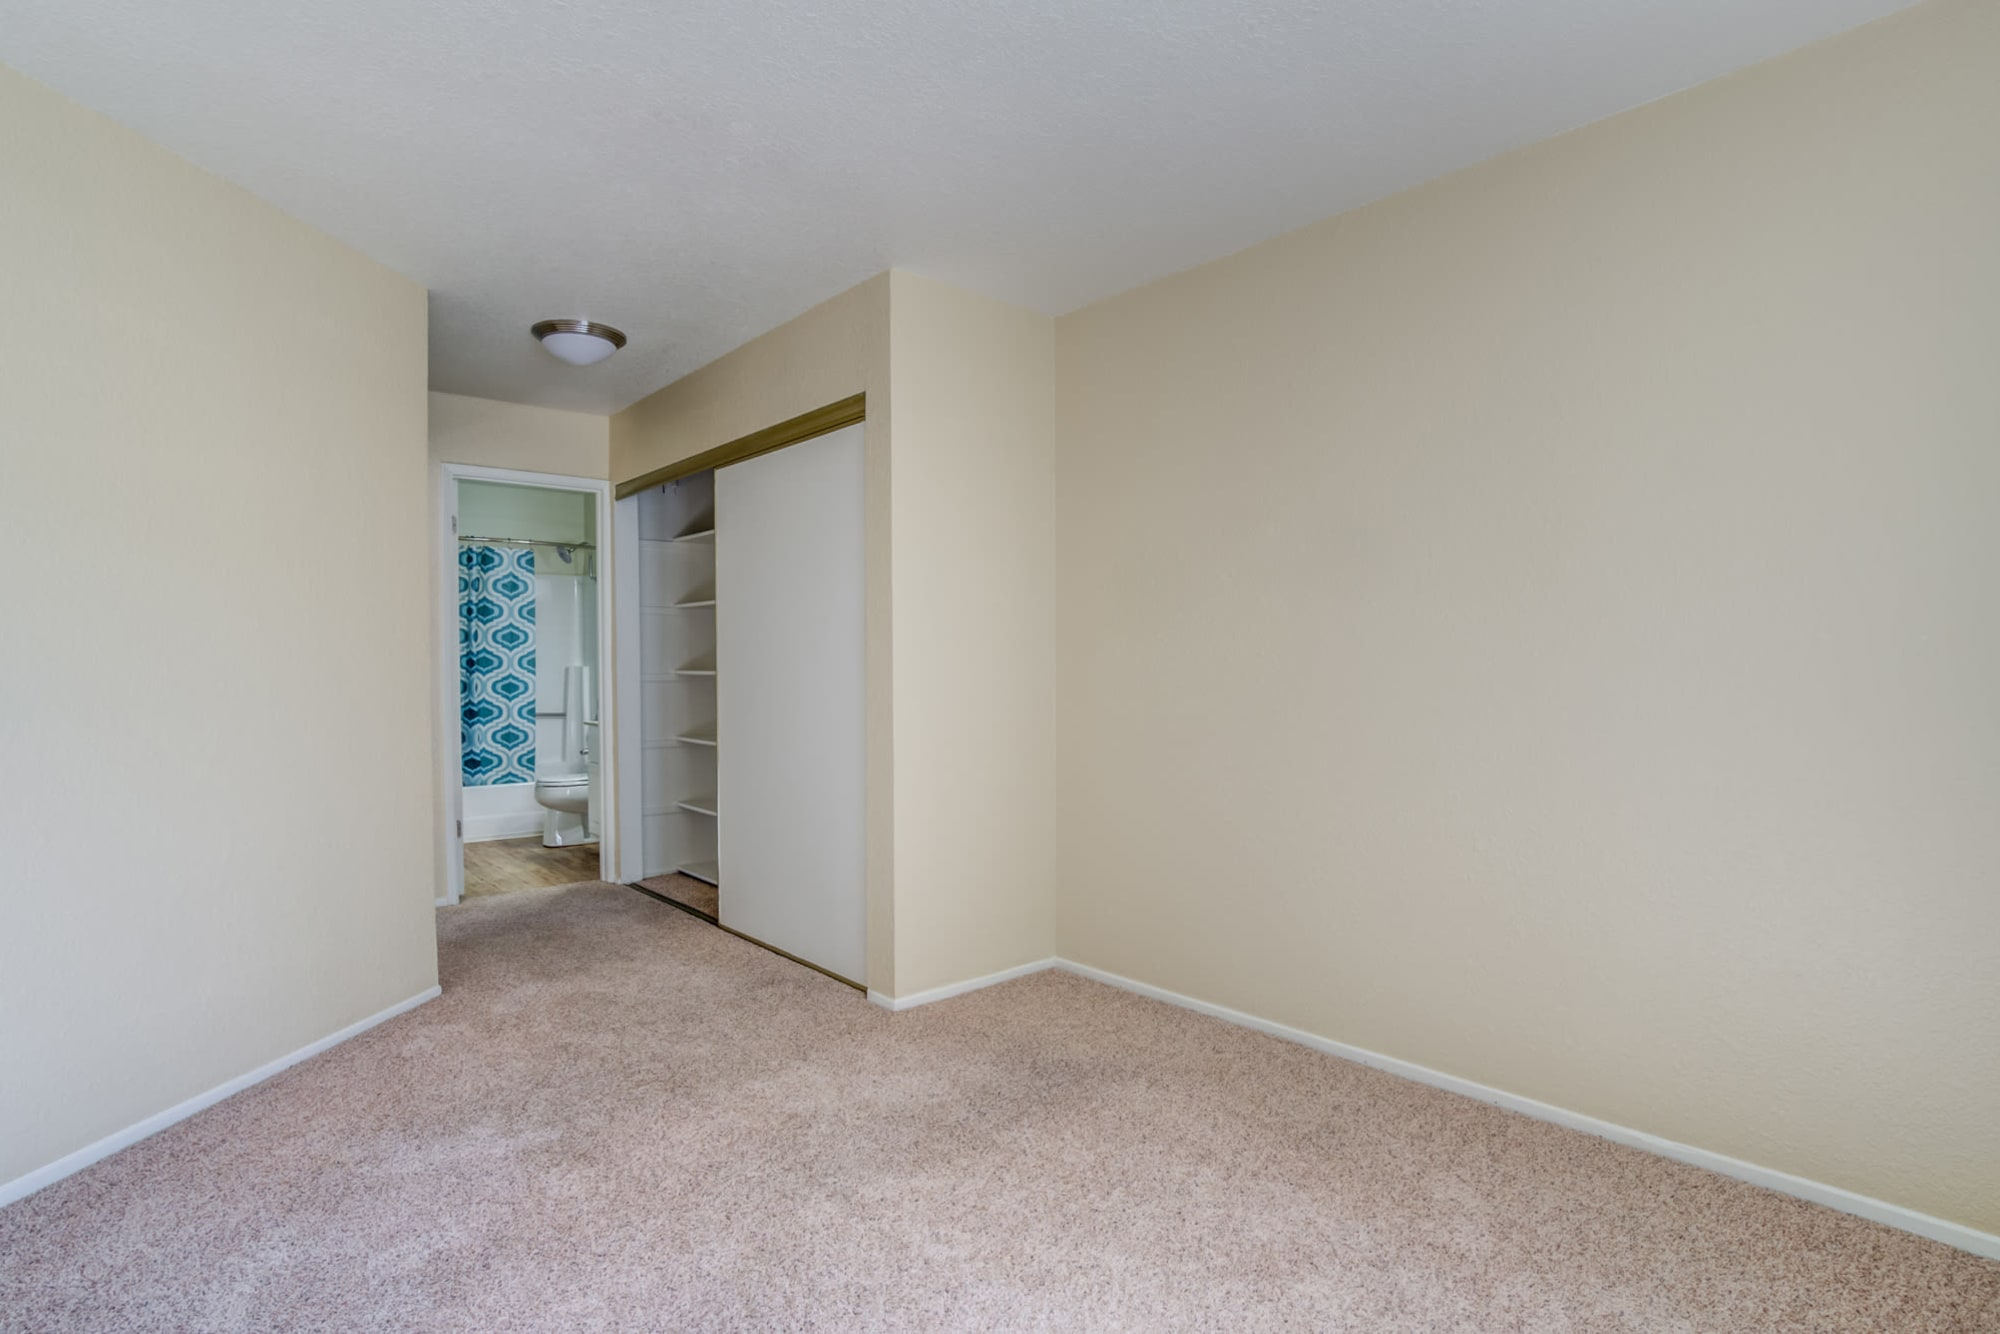 Spacious Empty Bedroom at Sommerset Apartments in Vacaville, CA